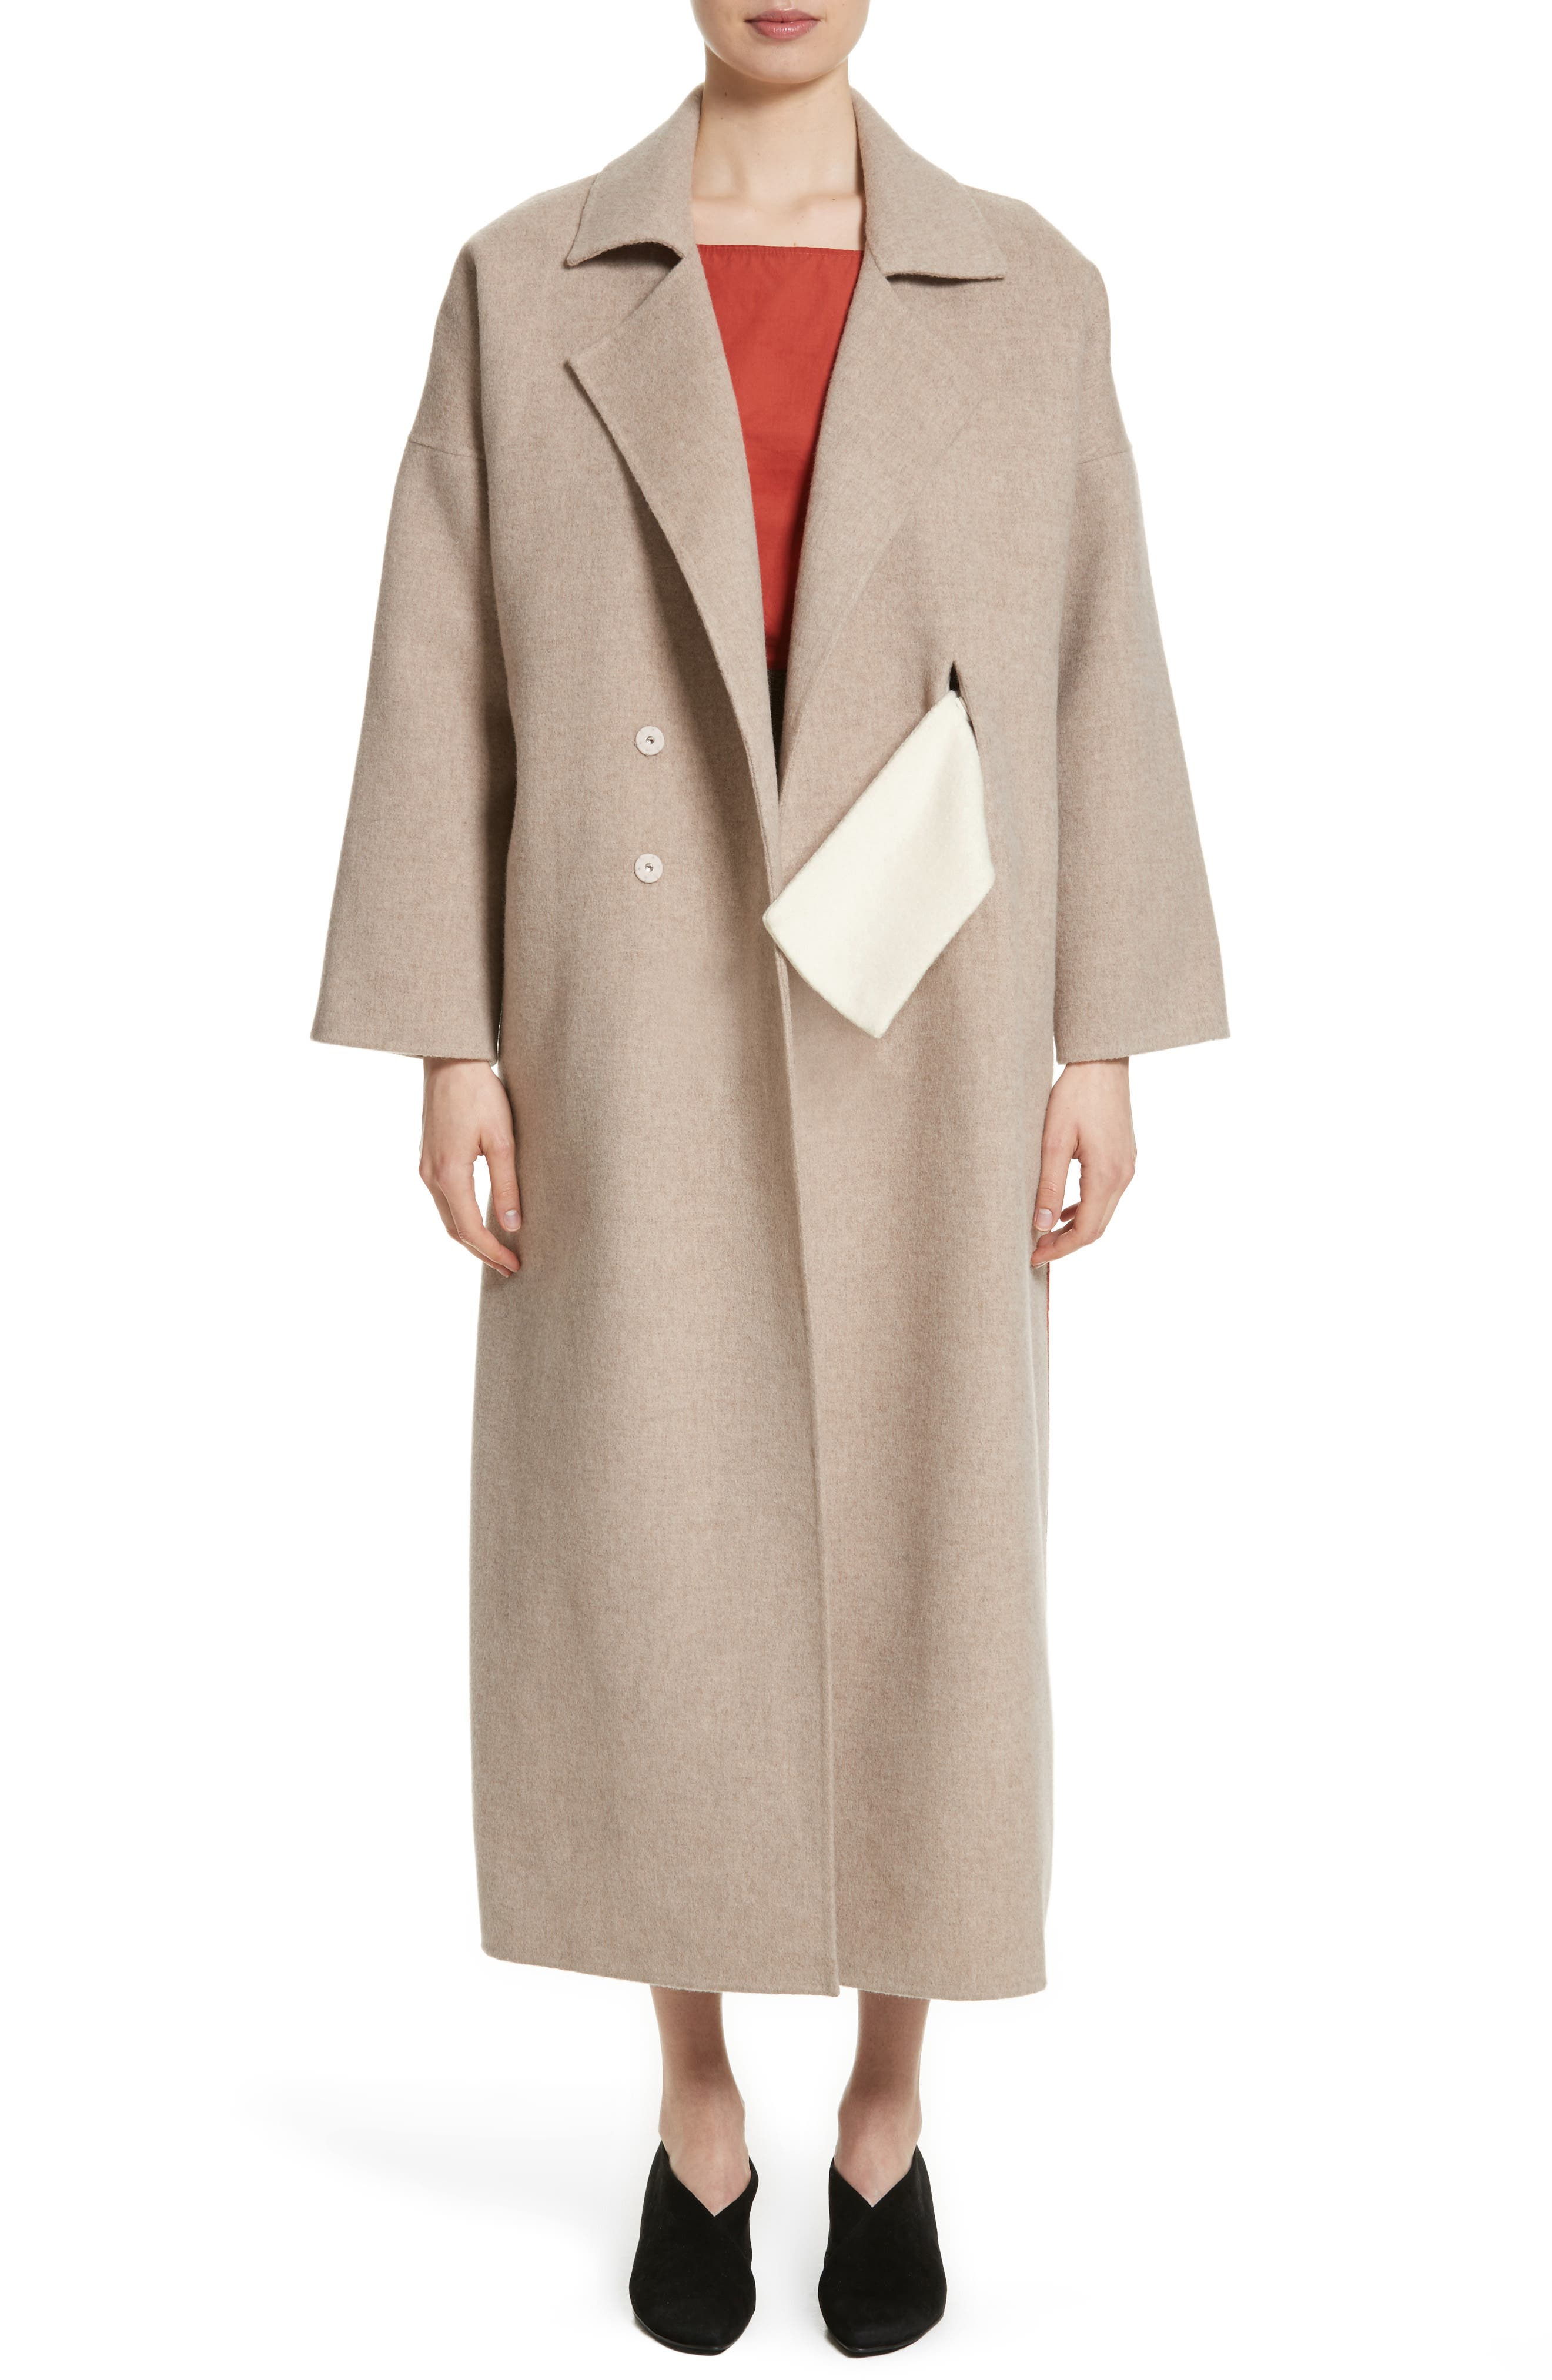 Kate Oversize Belted Coat,                             Main thumbnail 1, color,                             260